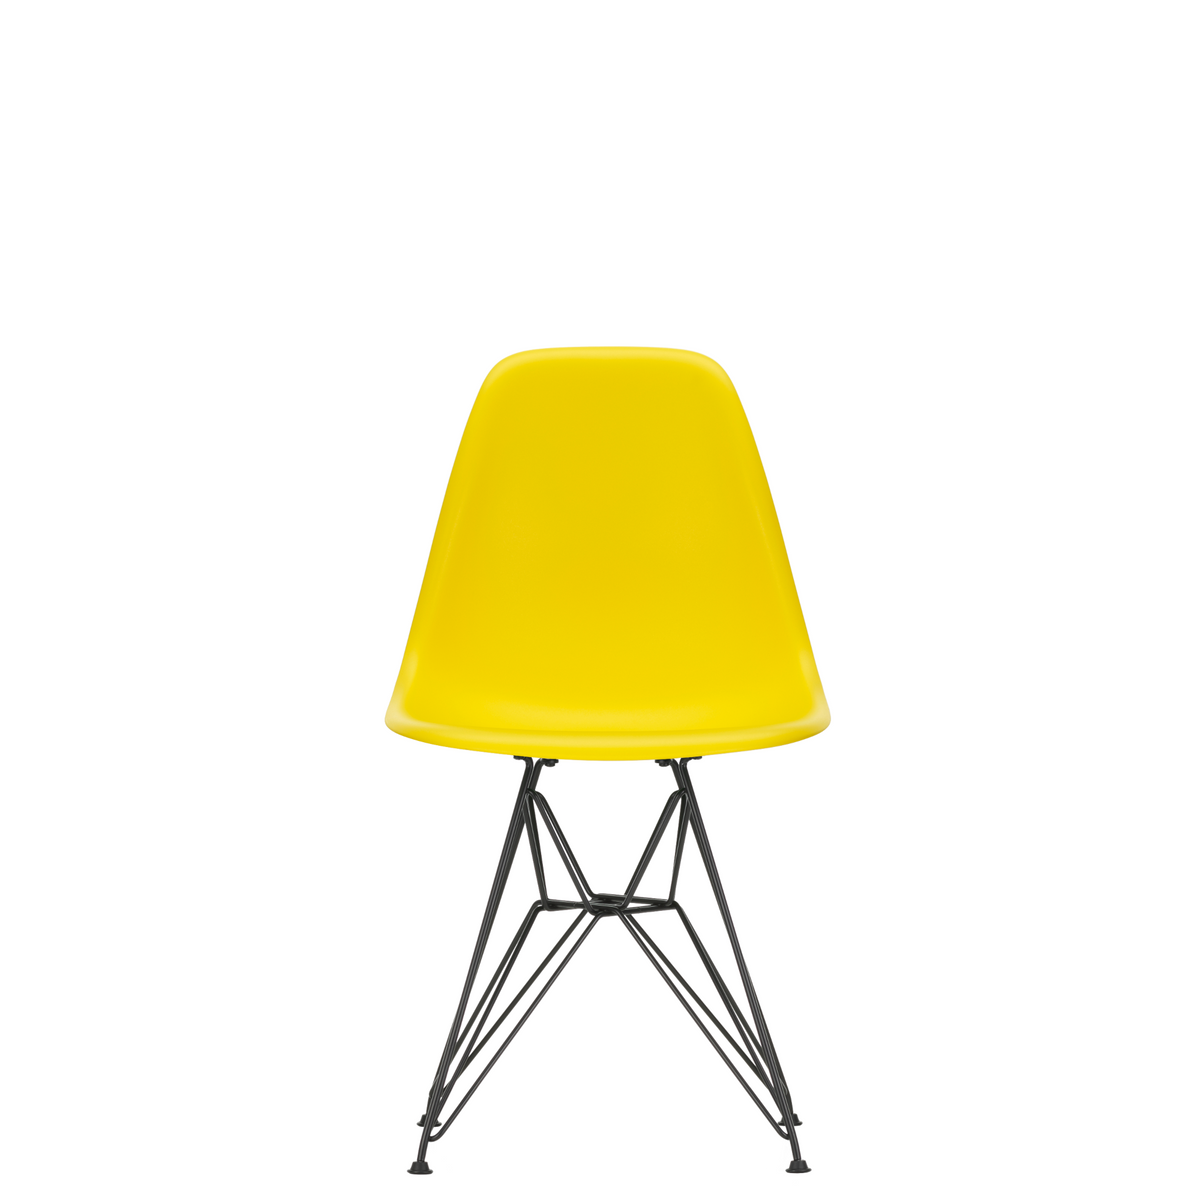 Vitra Eames Plastic Side Chair DSR Powder Coated for Outdoor Use Sunlight Yellow Shell Black Powdercoated Base